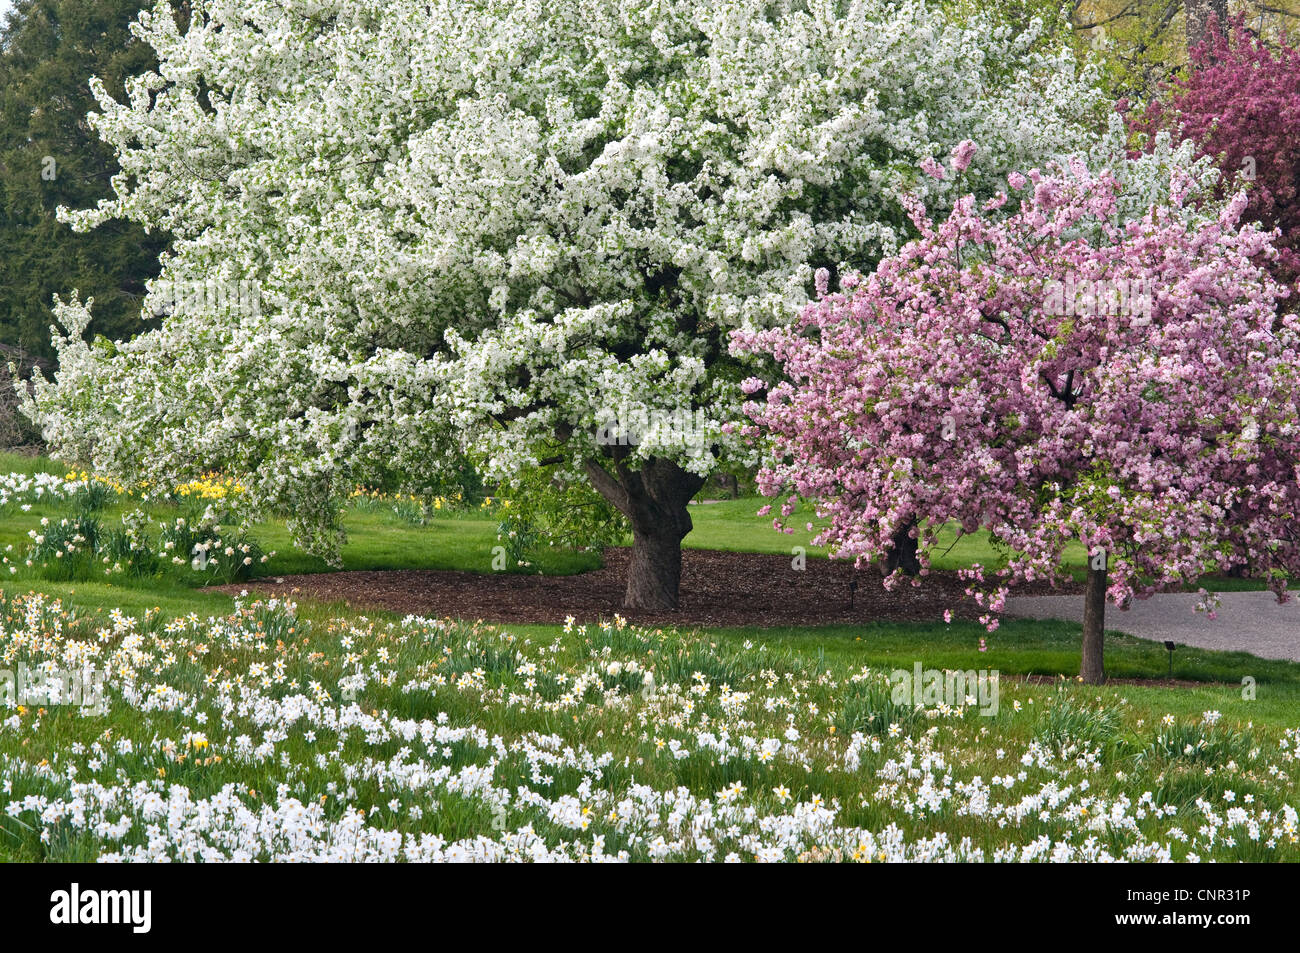 Crabapple Trees Stock Photos Crabapple Trees Stock Images Alamy